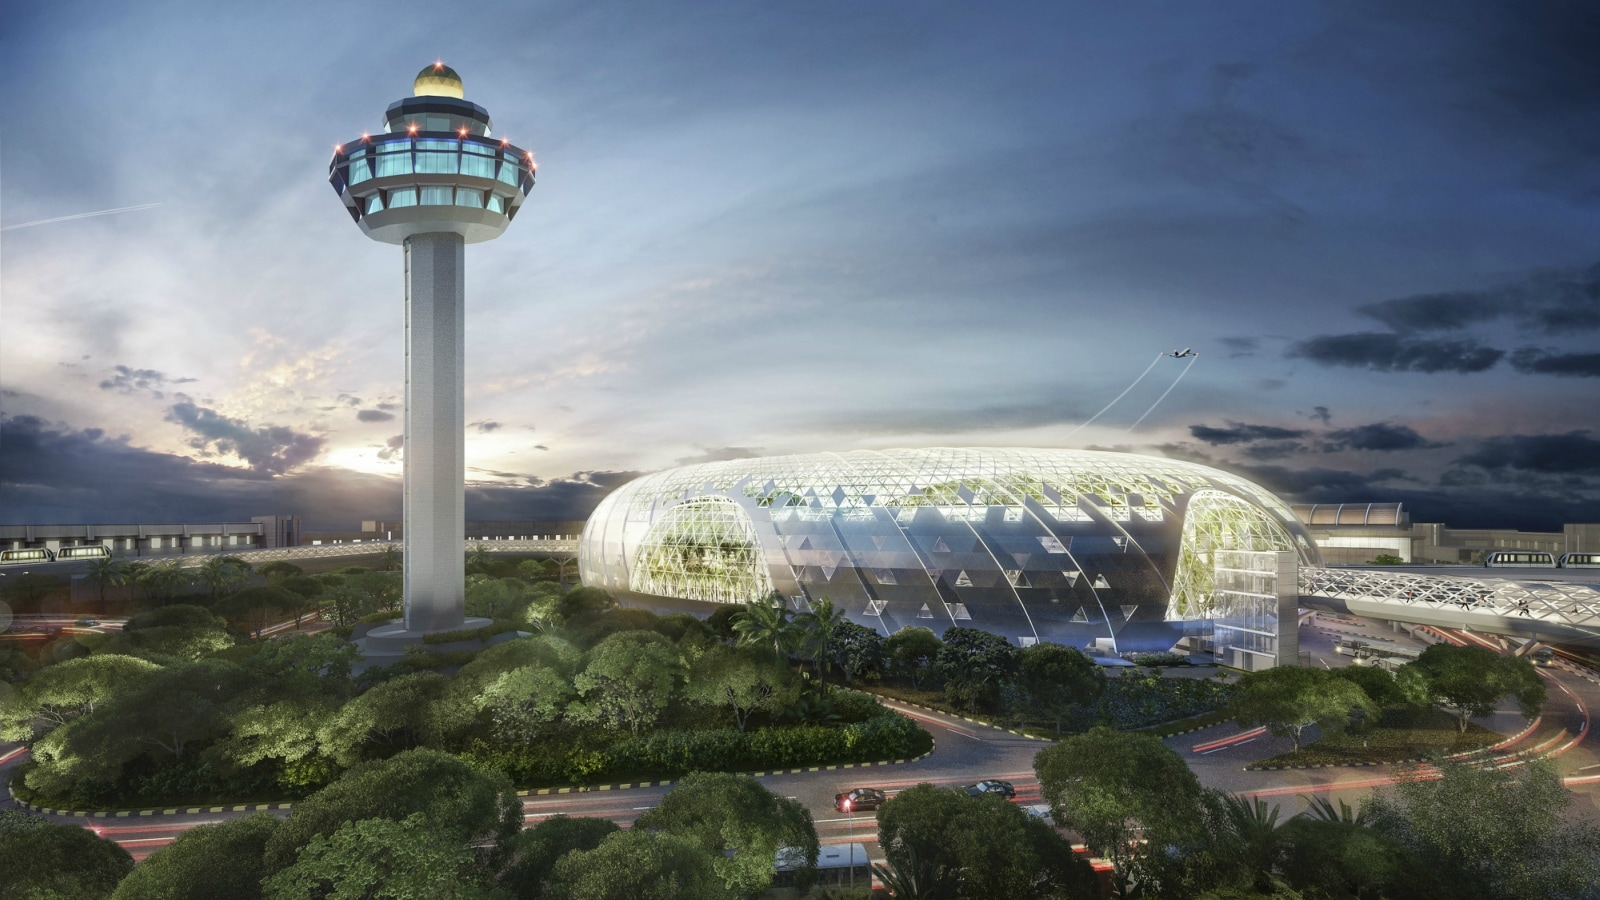 1. Singapore Changi Airport: Singapore Changi Airport is known for its rooftop swimming pool, two 24-hour movie theaters and shopping spots. The award came ahead of the much-awaited opening of Jewel Changi terminal on April 17, which will feature the world's tallest indoor waterfall.